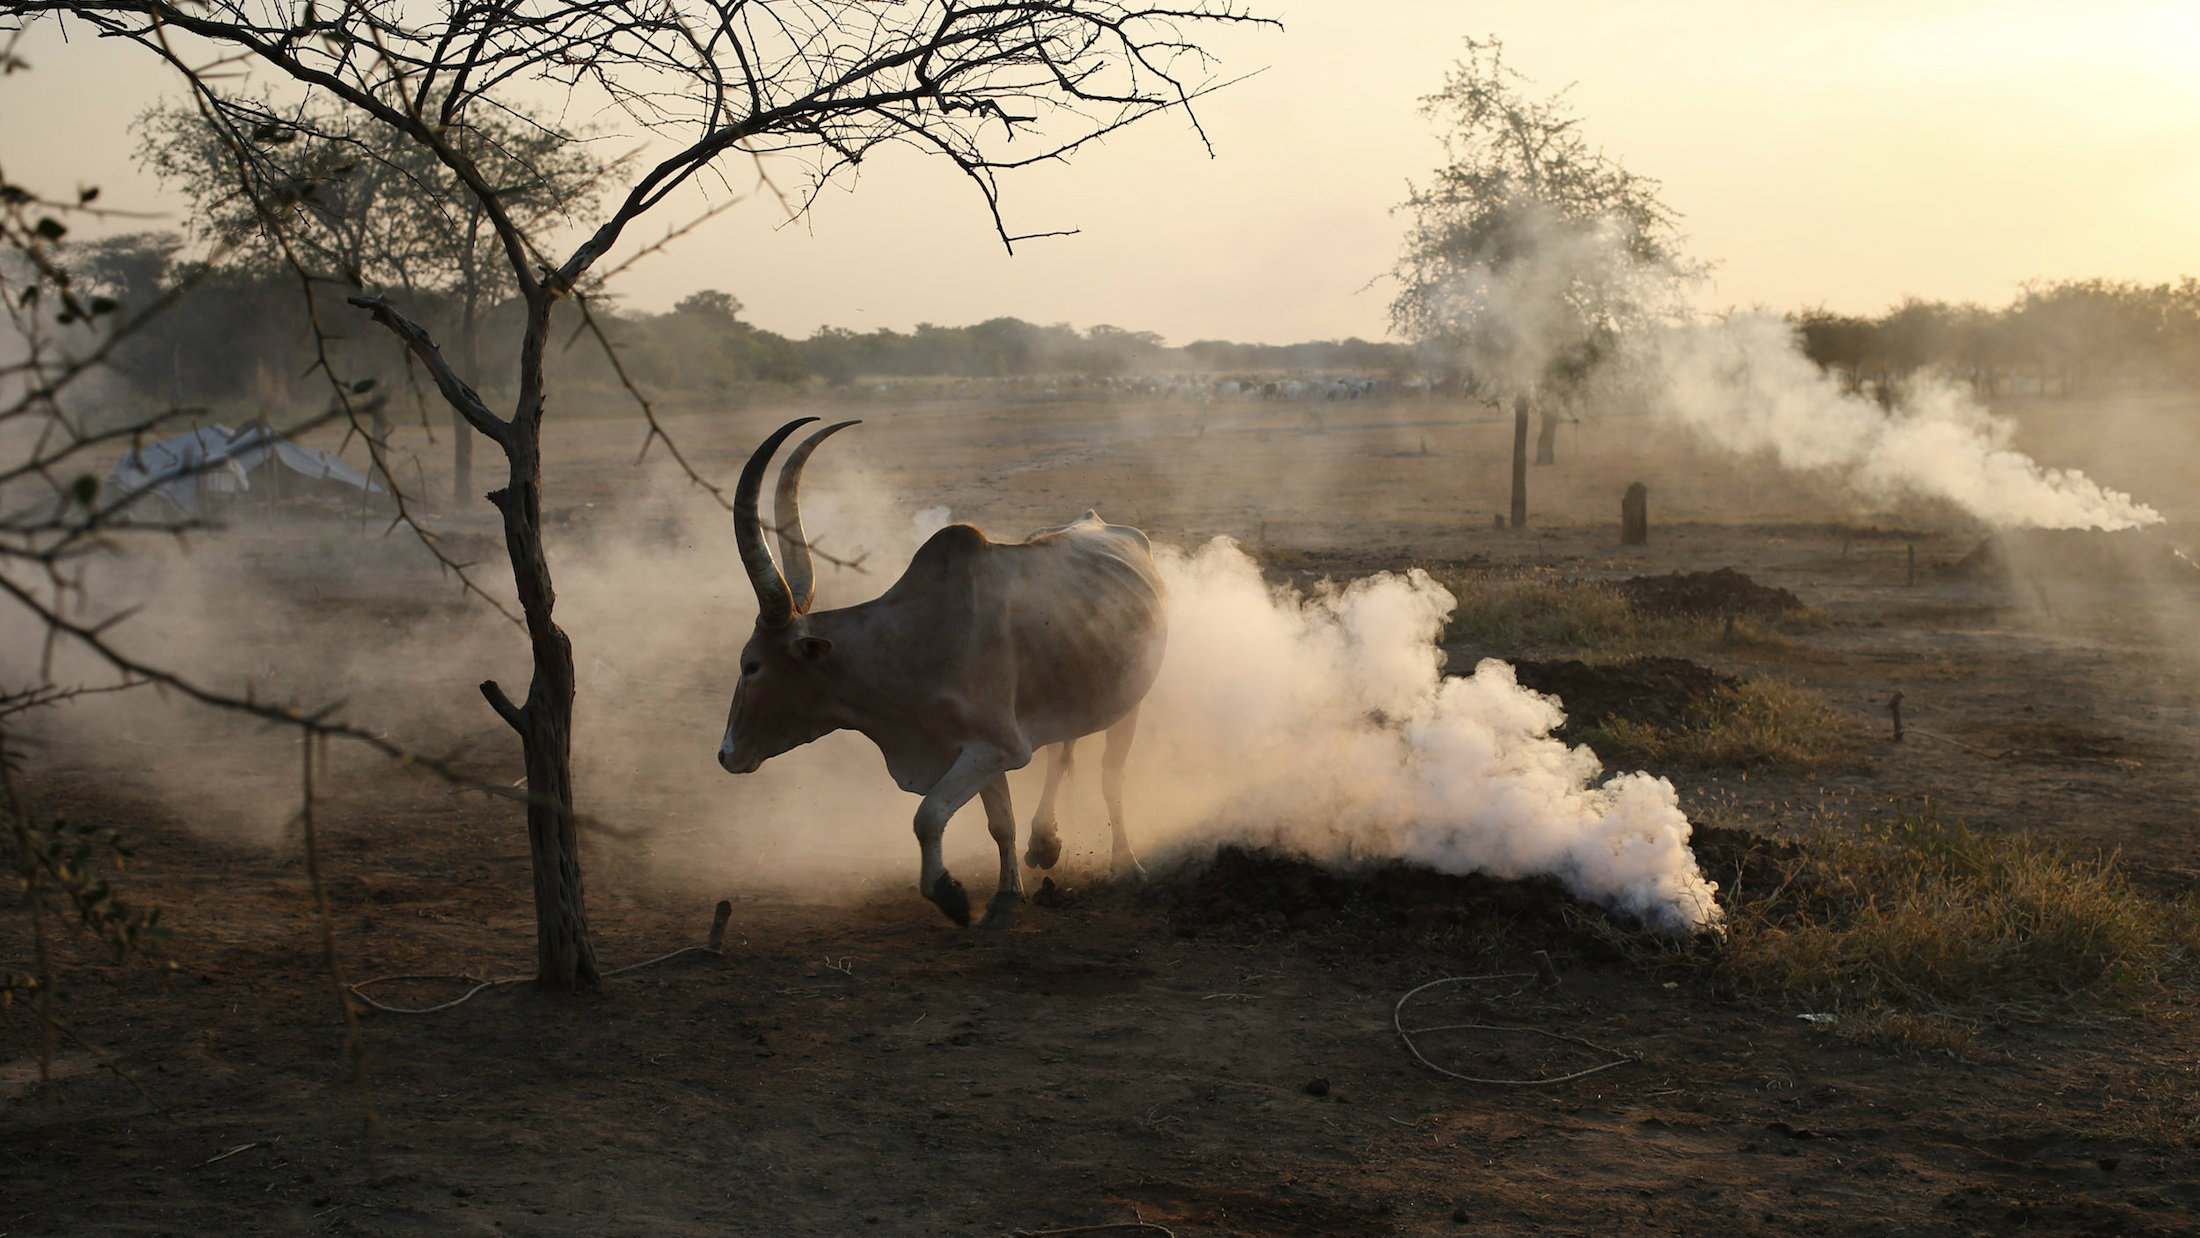 South Sudan may stop production of its first homegrown beer, White Bull.